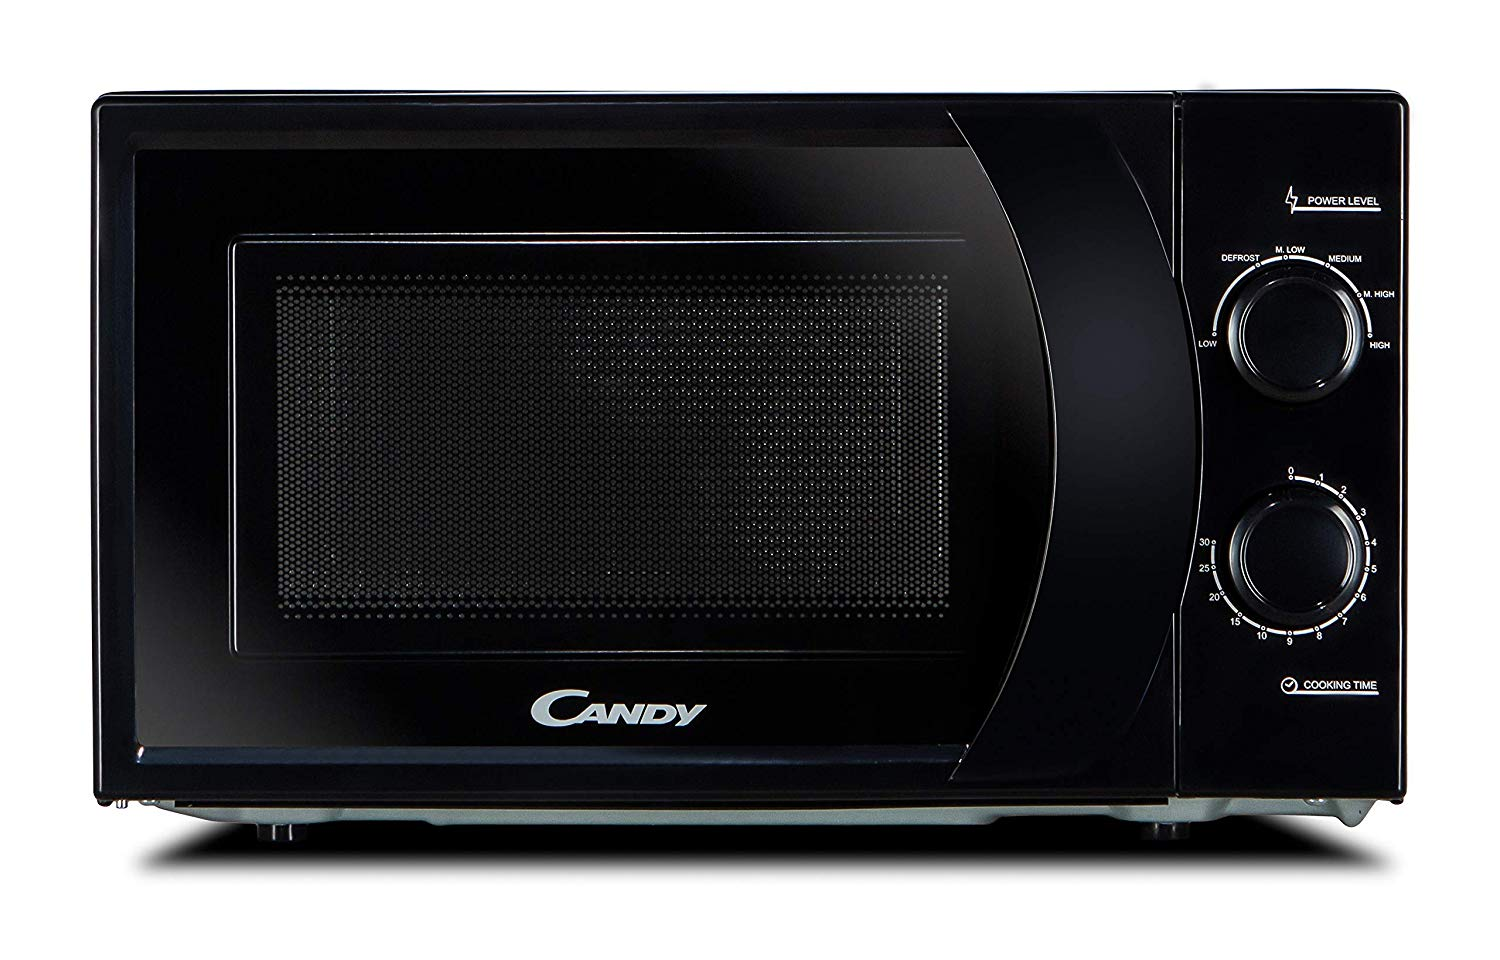 Candy 700W Black Solo Microwave